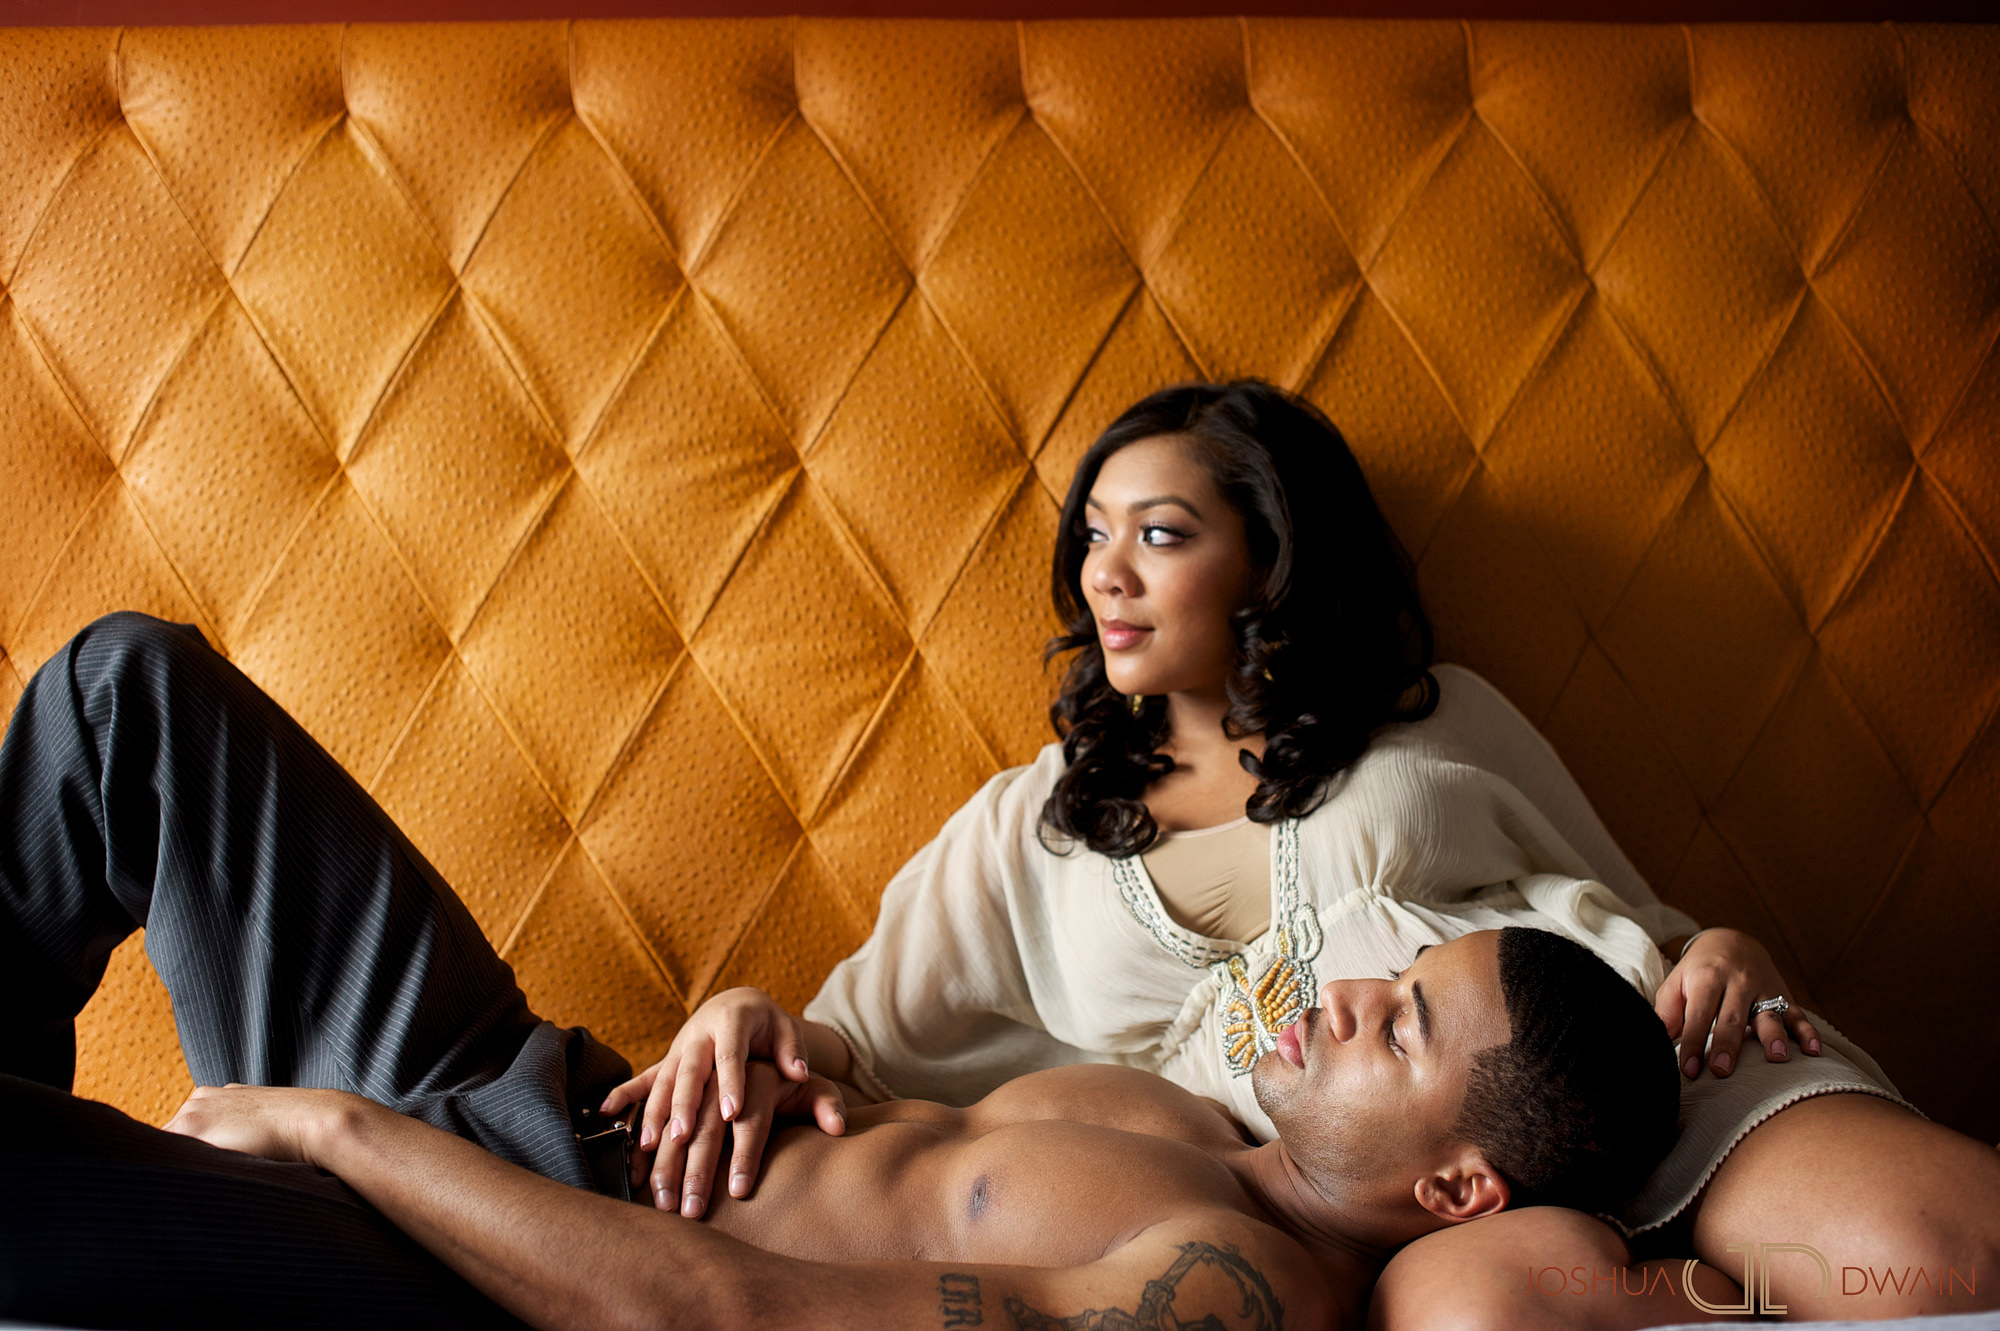 khadeen-ellis-006-new-york-city-maternity-photographer-joshua-dwain-2011-03-18_KD_040